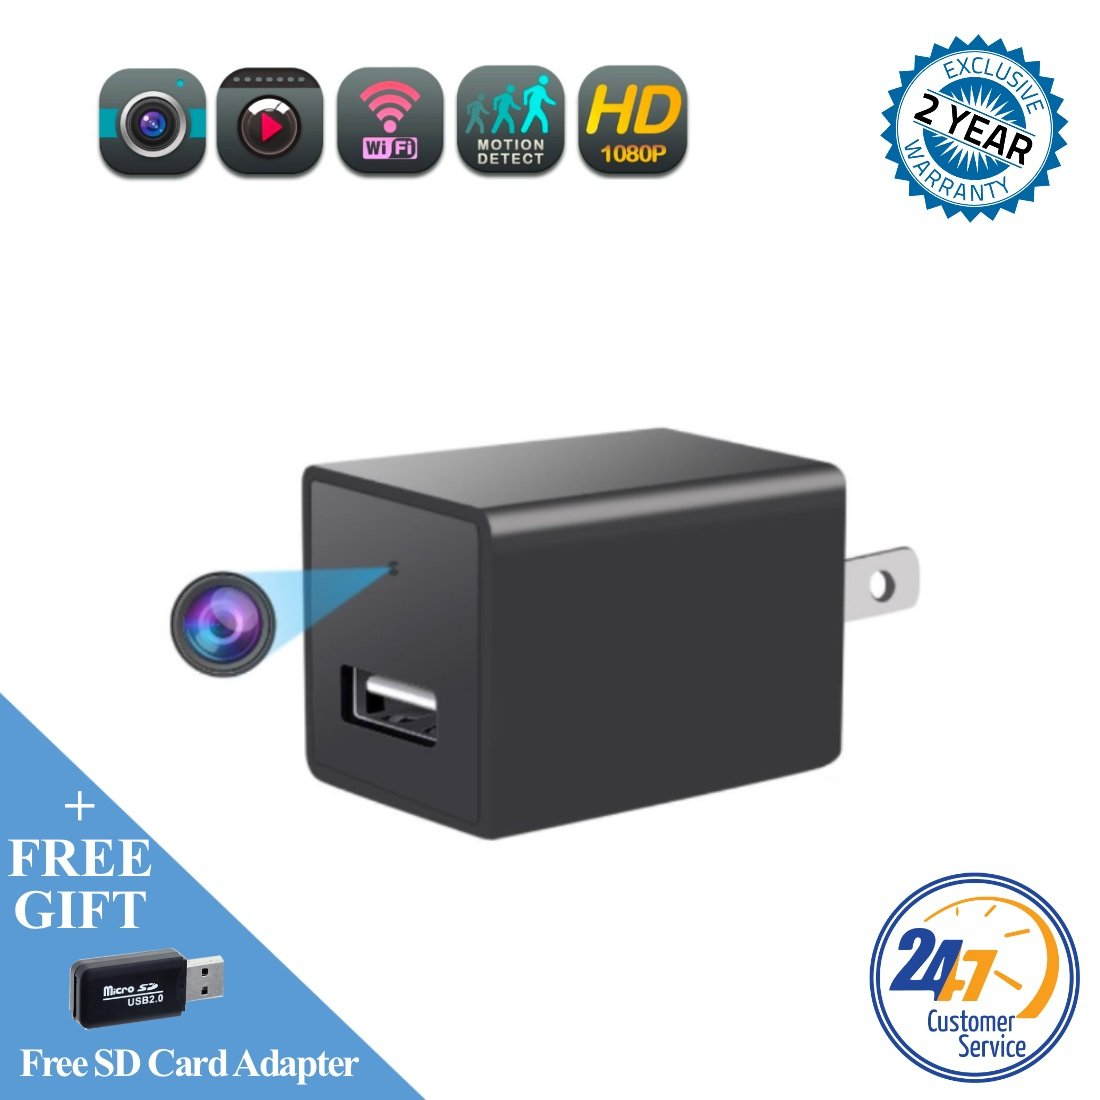 Mini spy camera USB charger by WEMLB -1080p HD hidden camera, WIFI Wireless wall plug USB Charger [Motion Detection, AC Adapter, Remote App Control] Nanny camera |Home, Kids, Baby, Pet monitoring